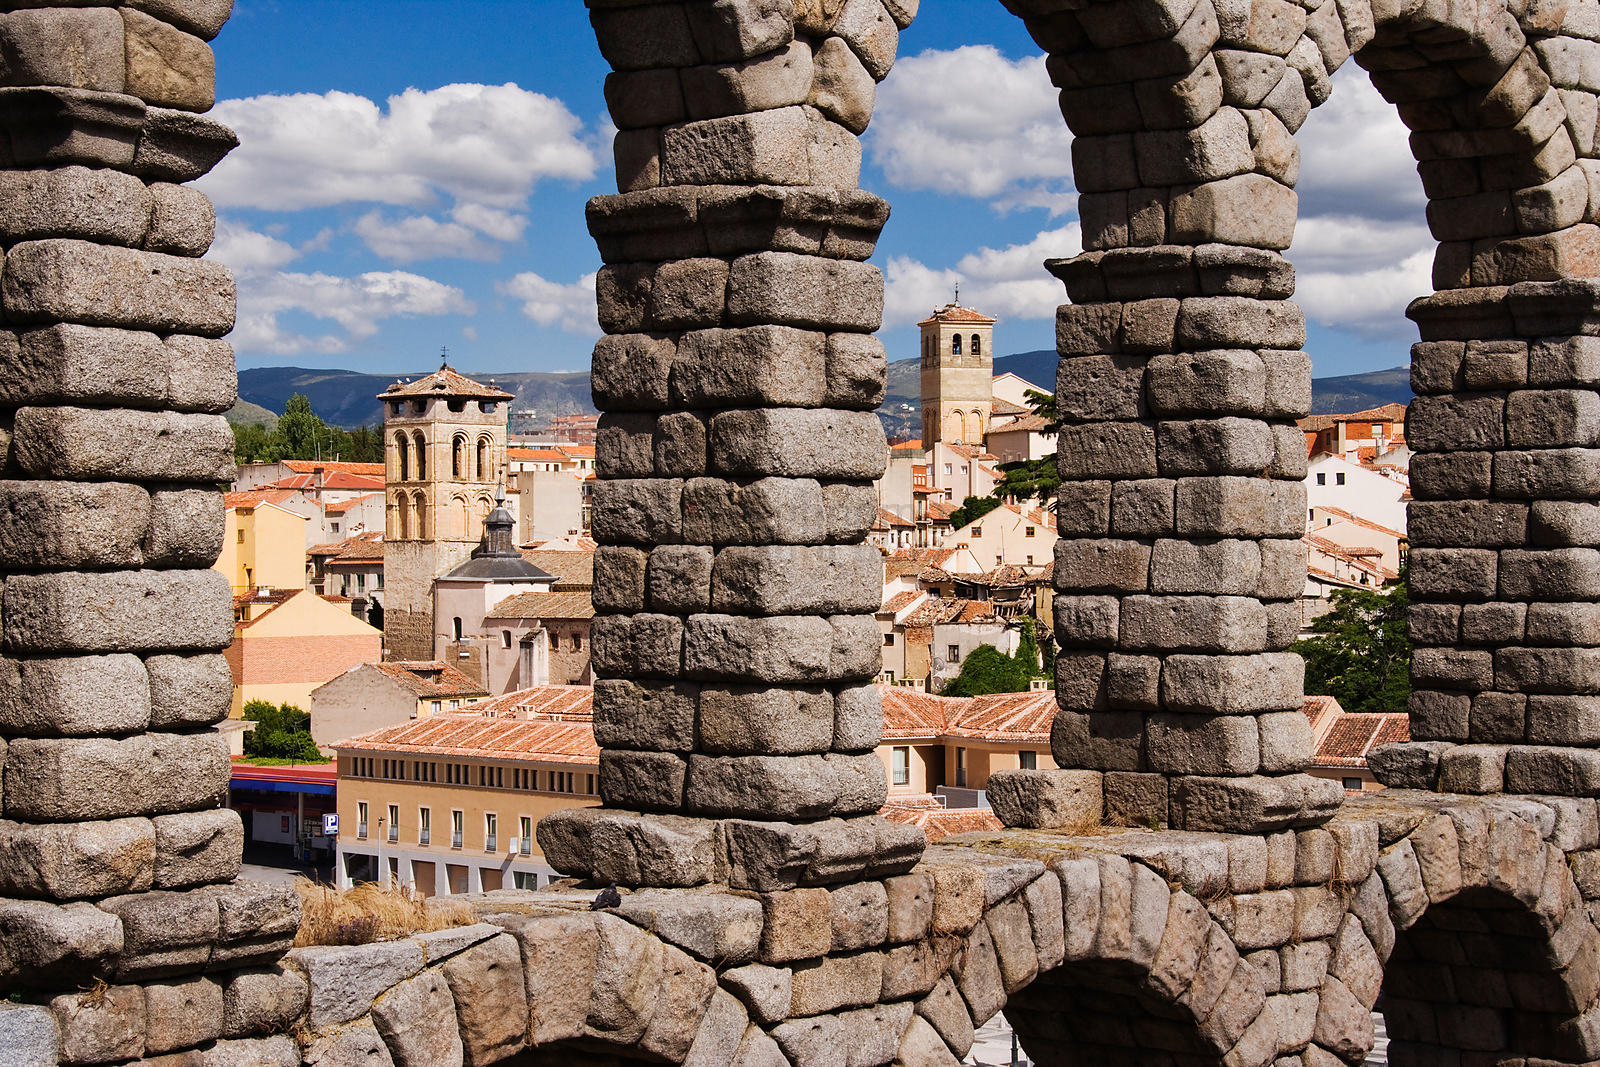 Skyline through the Roman Aqueduct Segovia Spain